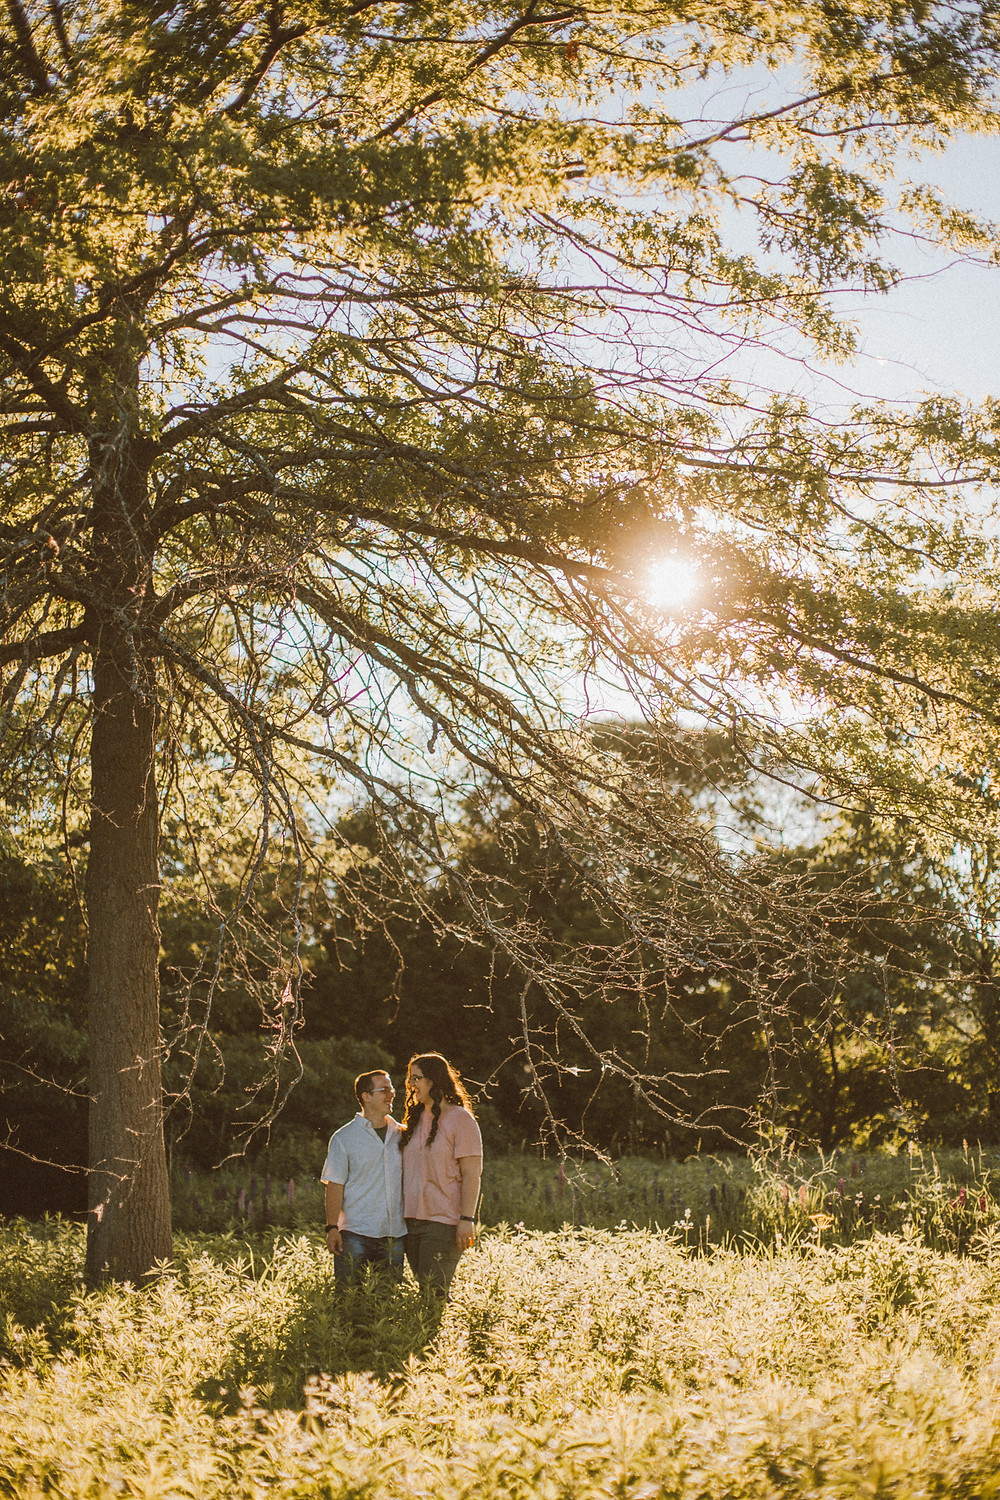 Lifestyle engagement photography at Memorial Park in Appleton, WI.